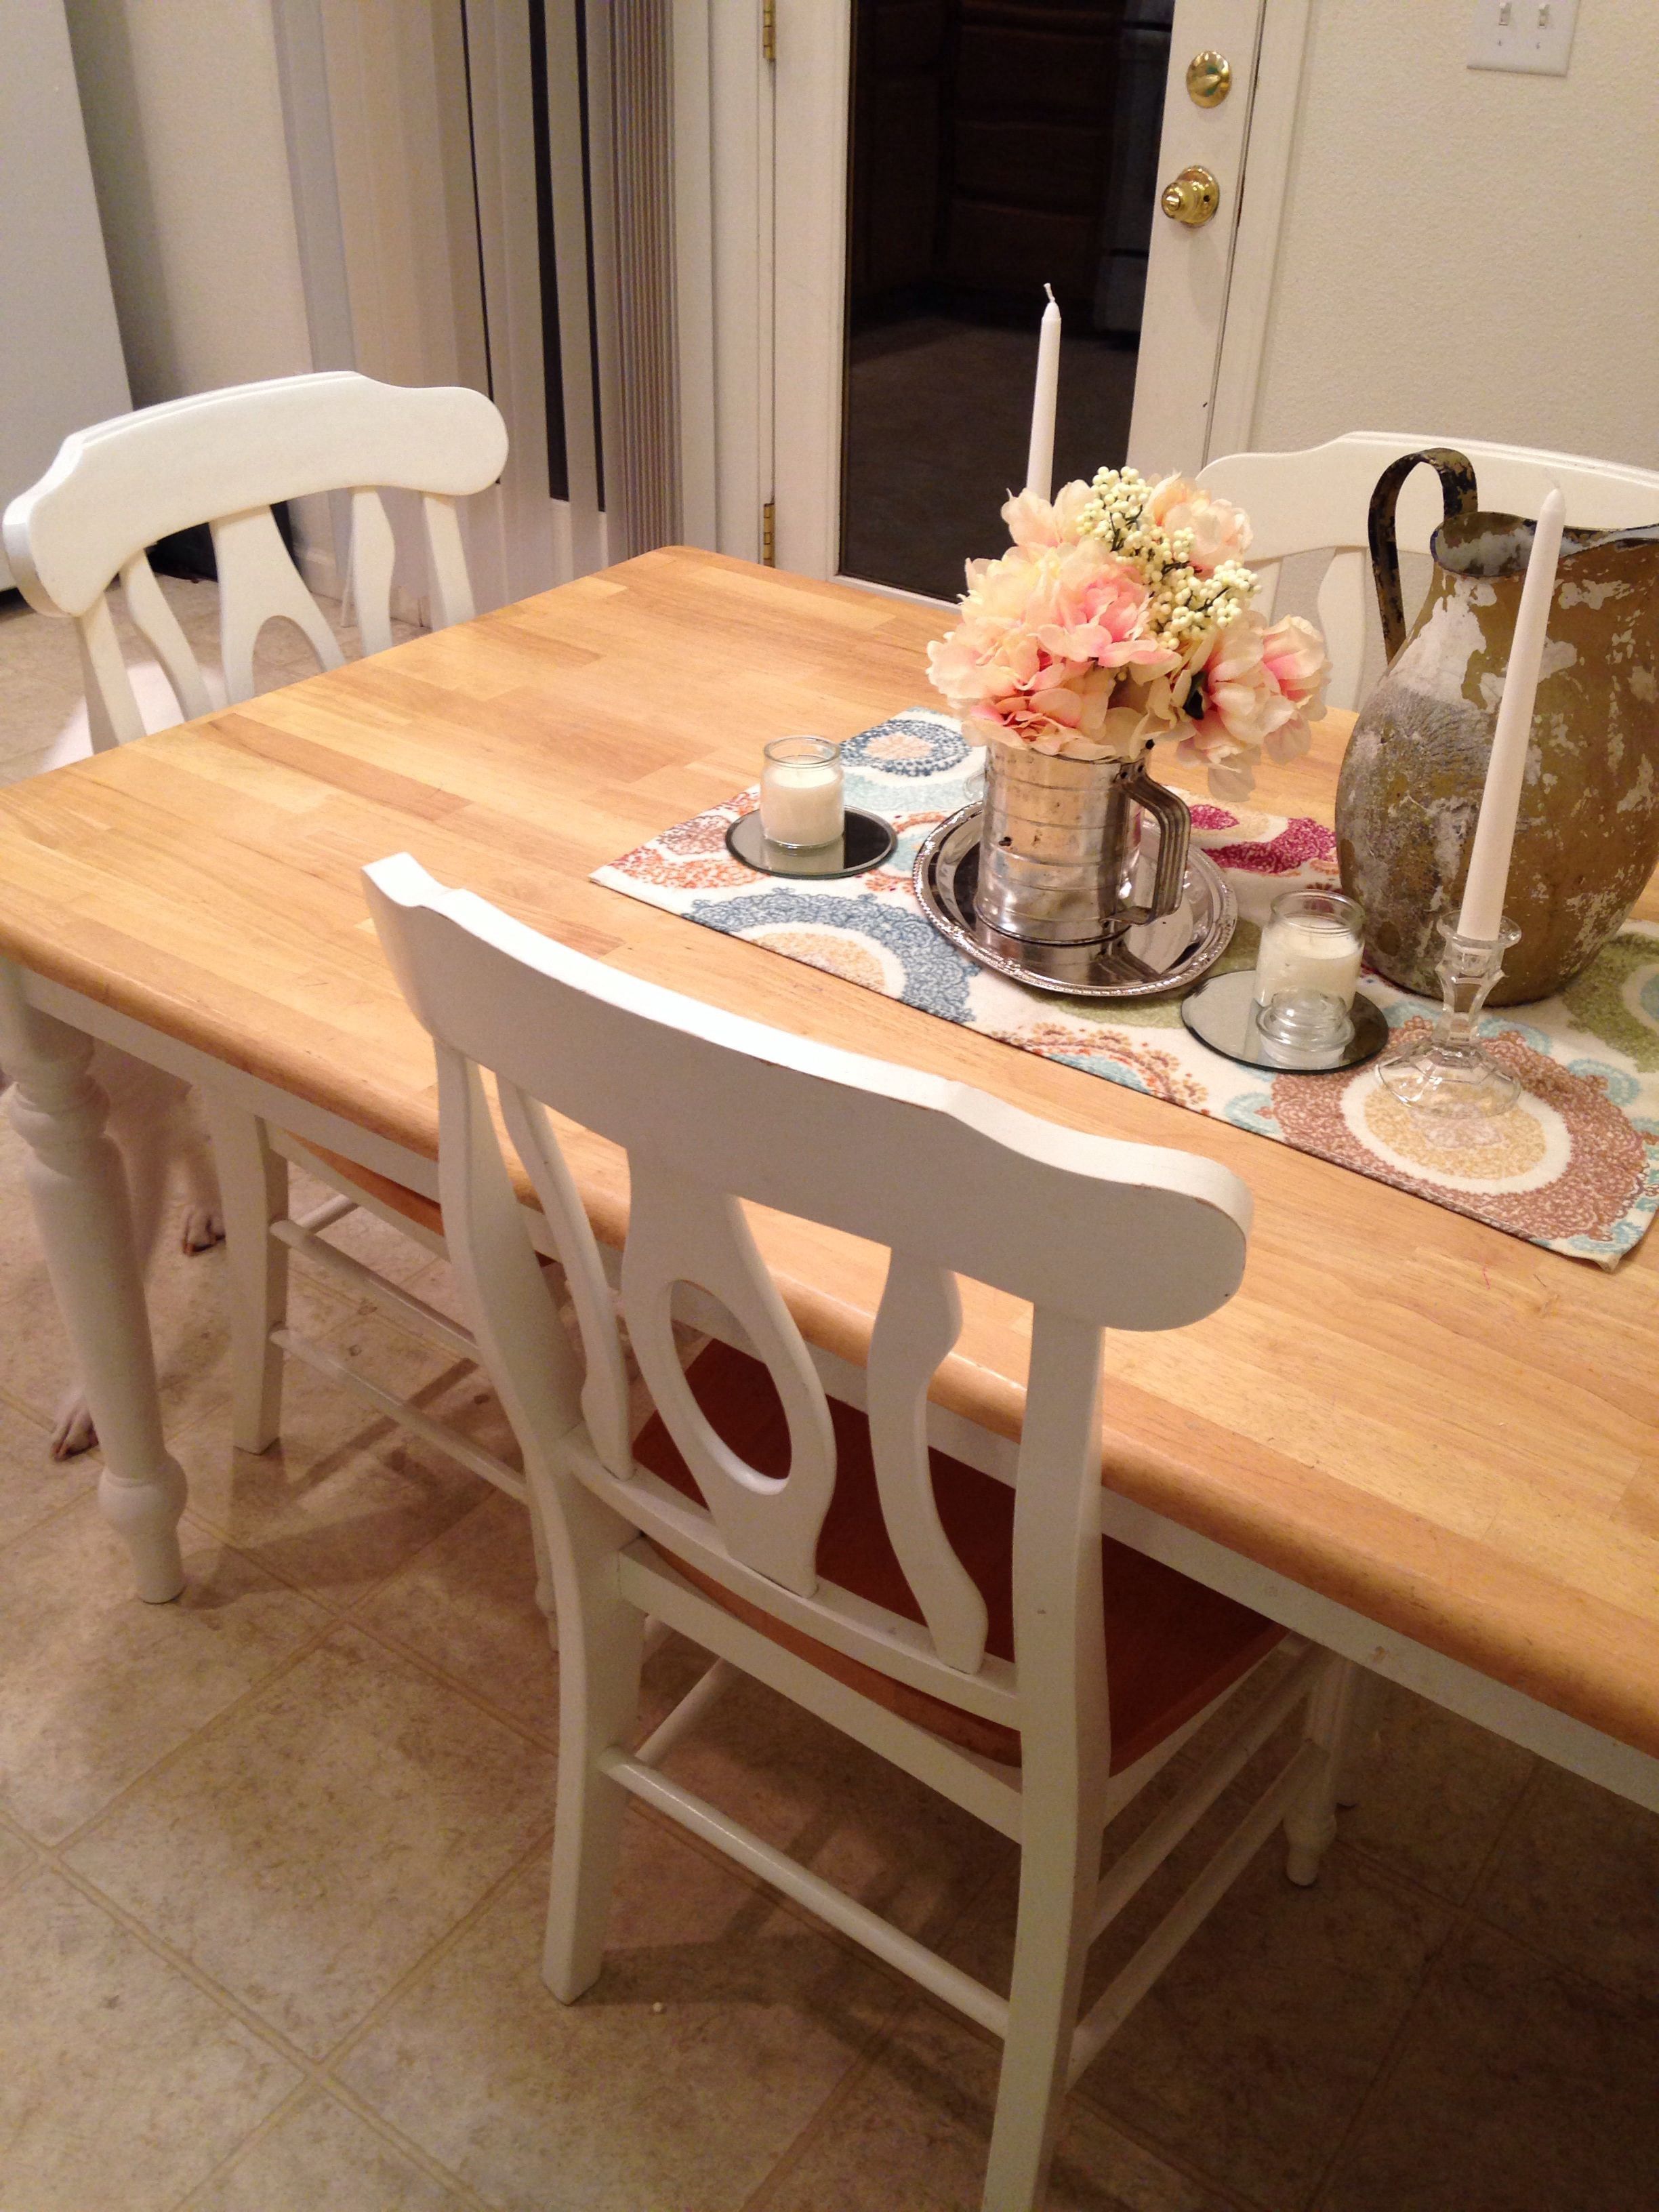 Best ideas about Shabby Chic Kitchen Table . Save or Pin Shabby chic kitchen table casa Now.